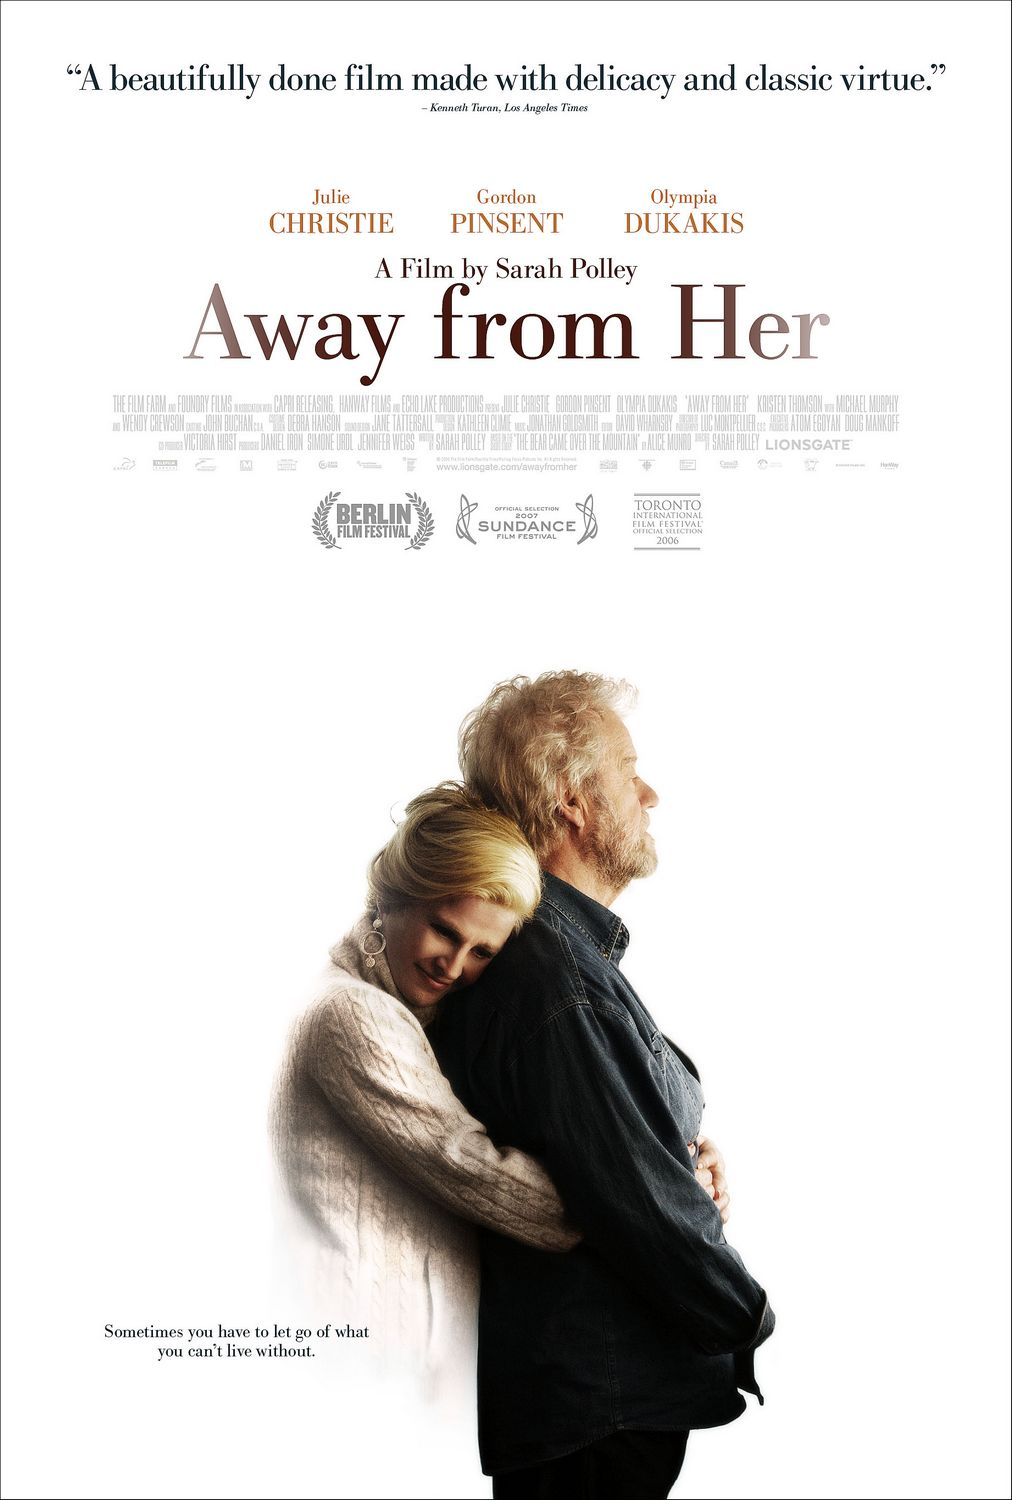 Movies about aging